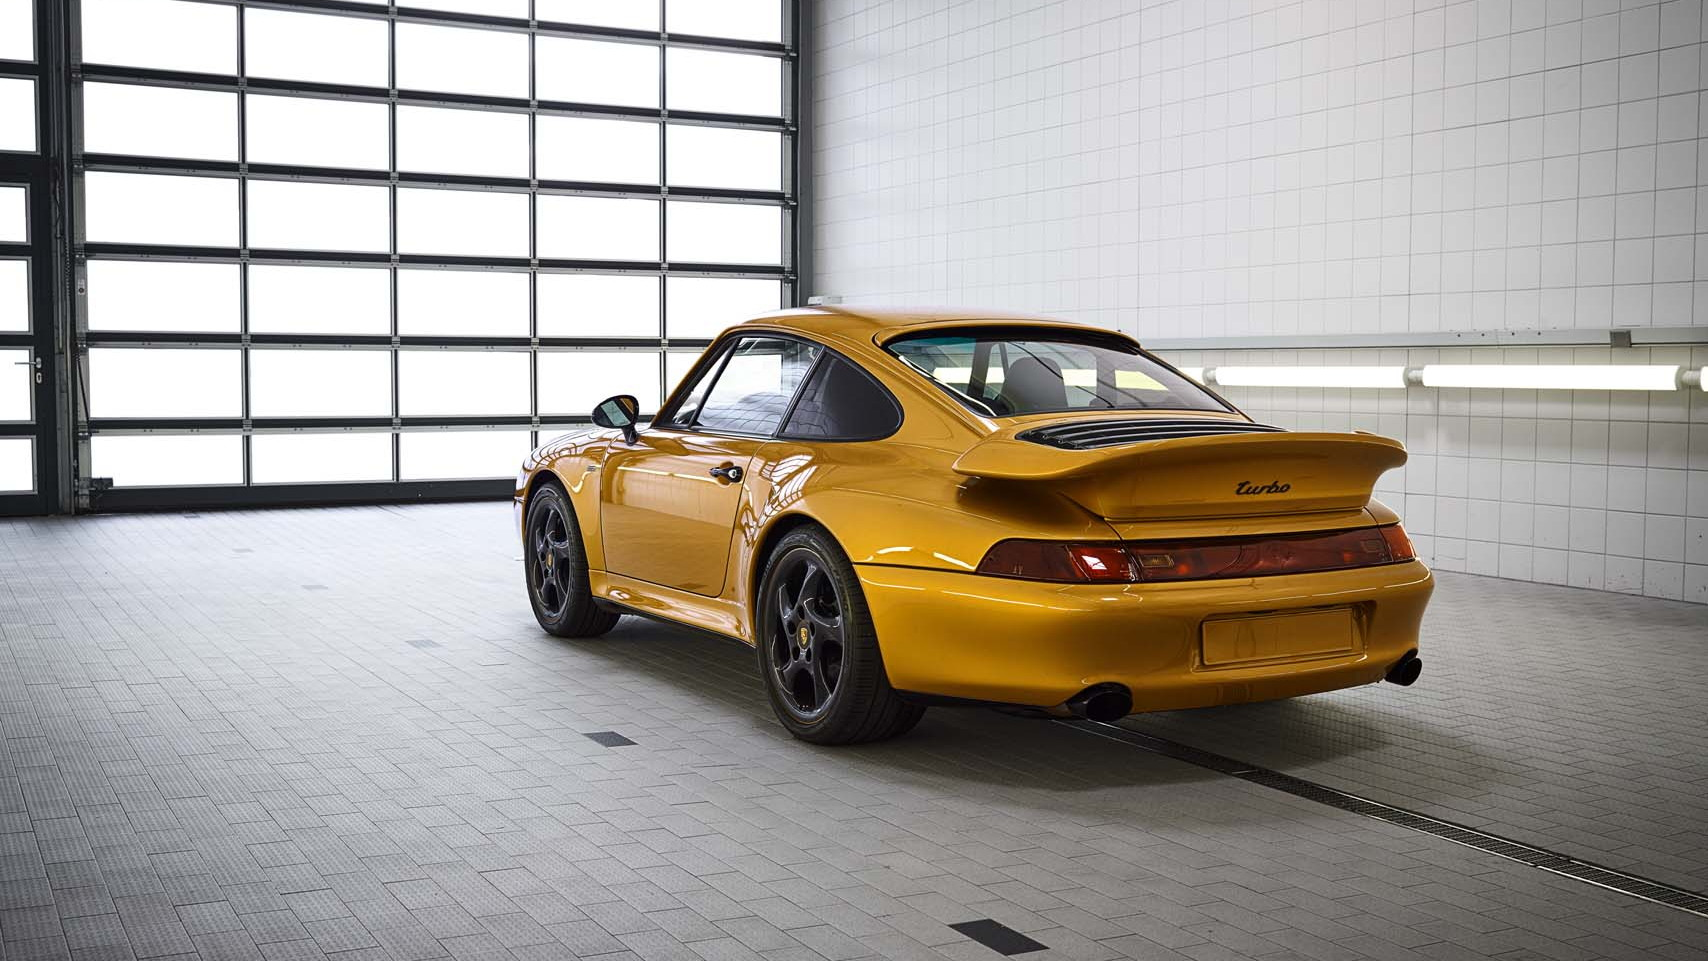 Project Gold: 911 restomod